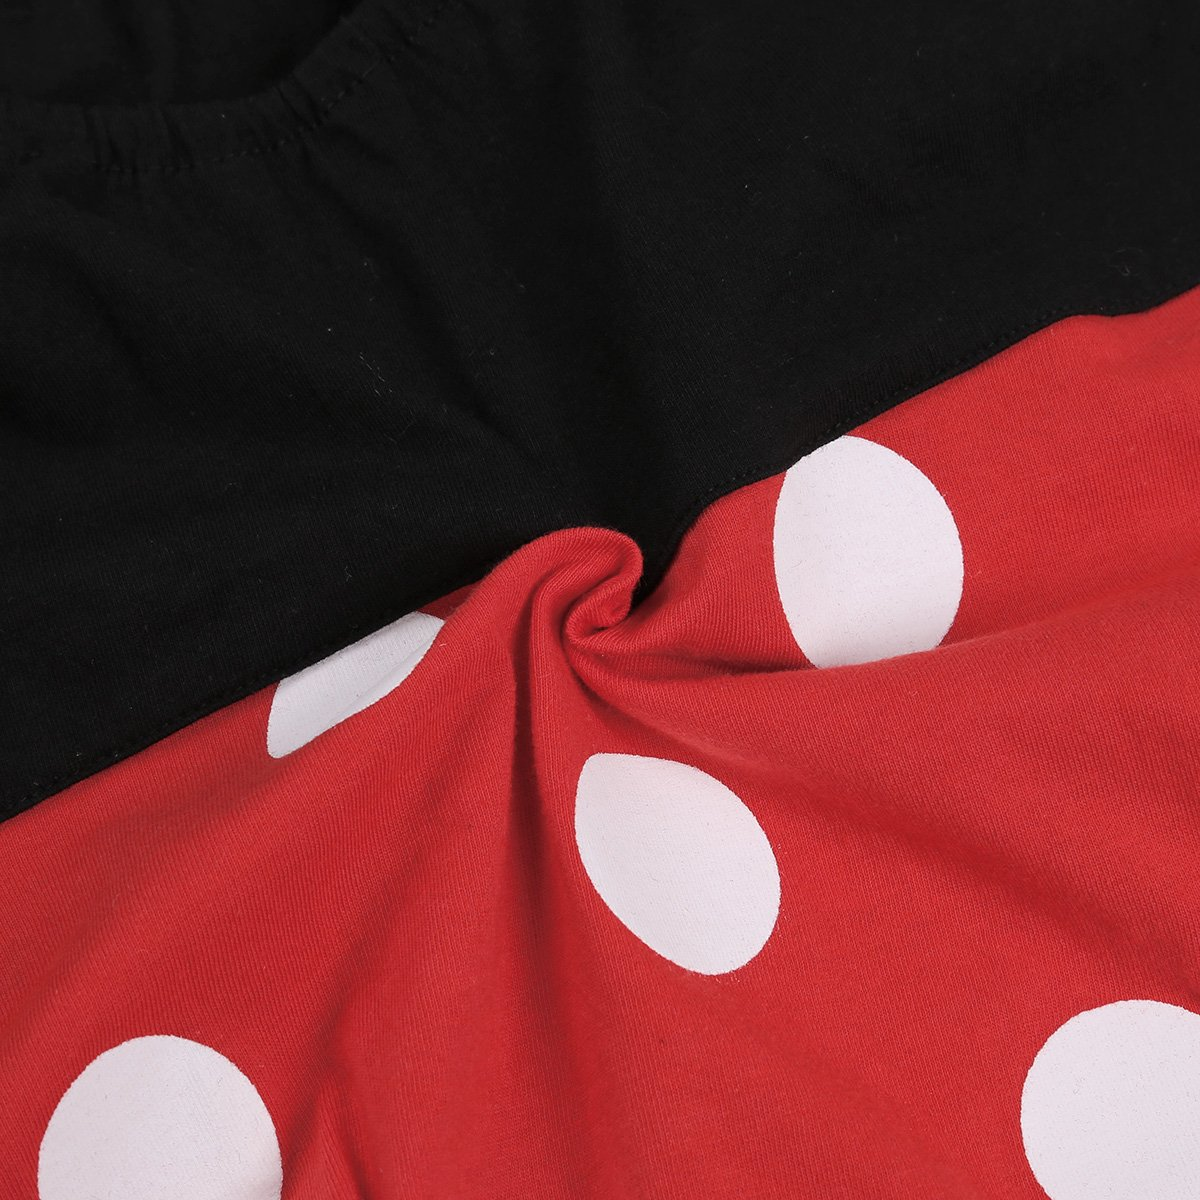 MSemis Infant Baby Boys Girls Cosplay Party Mini Mouse Costume Polka Dots Romper Playsuit with Hat Outfit Set